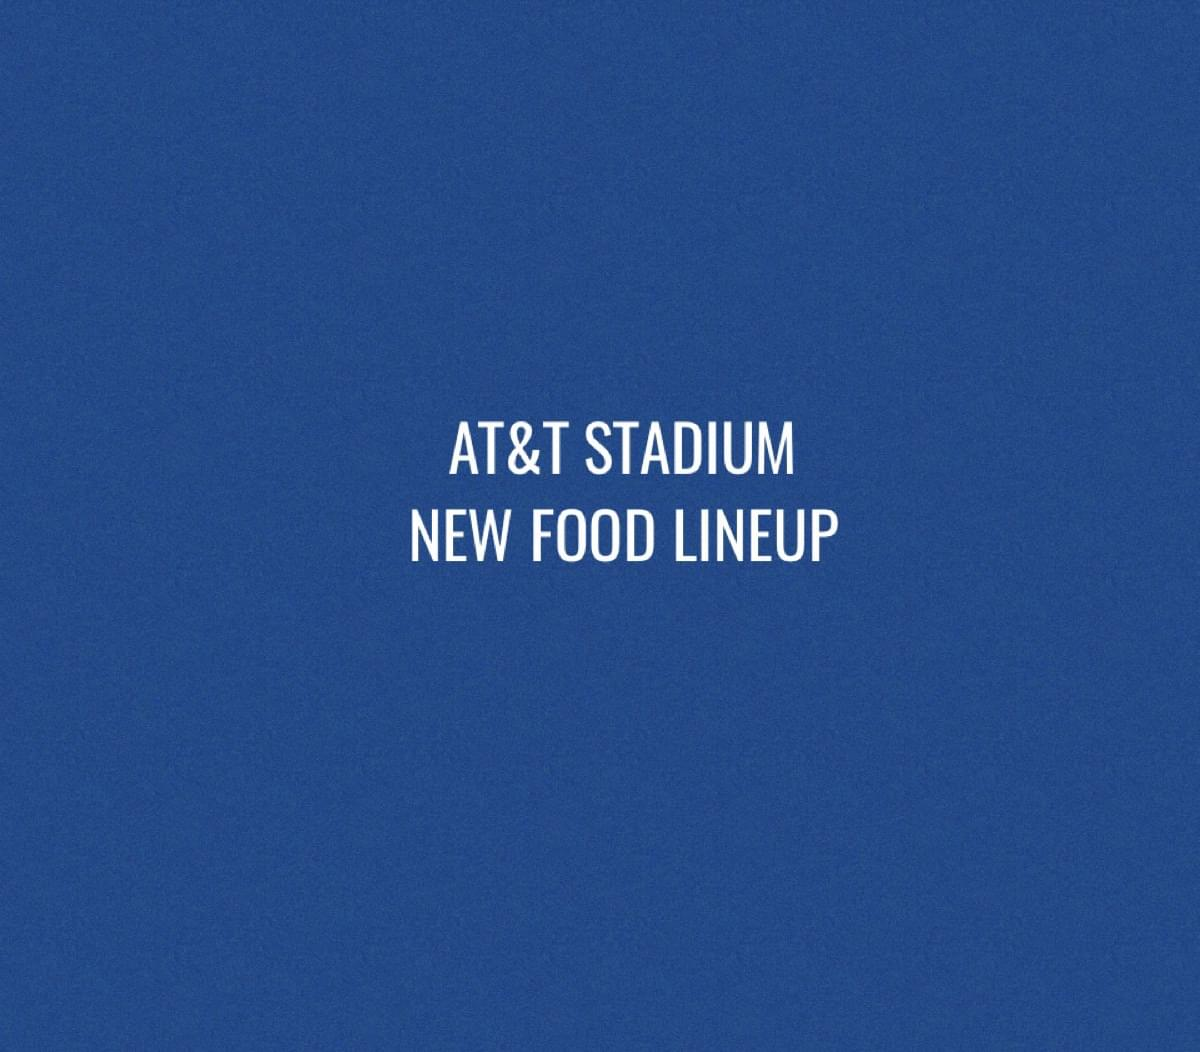 AT&T Stadium introduces new food lineup for 2019 football season